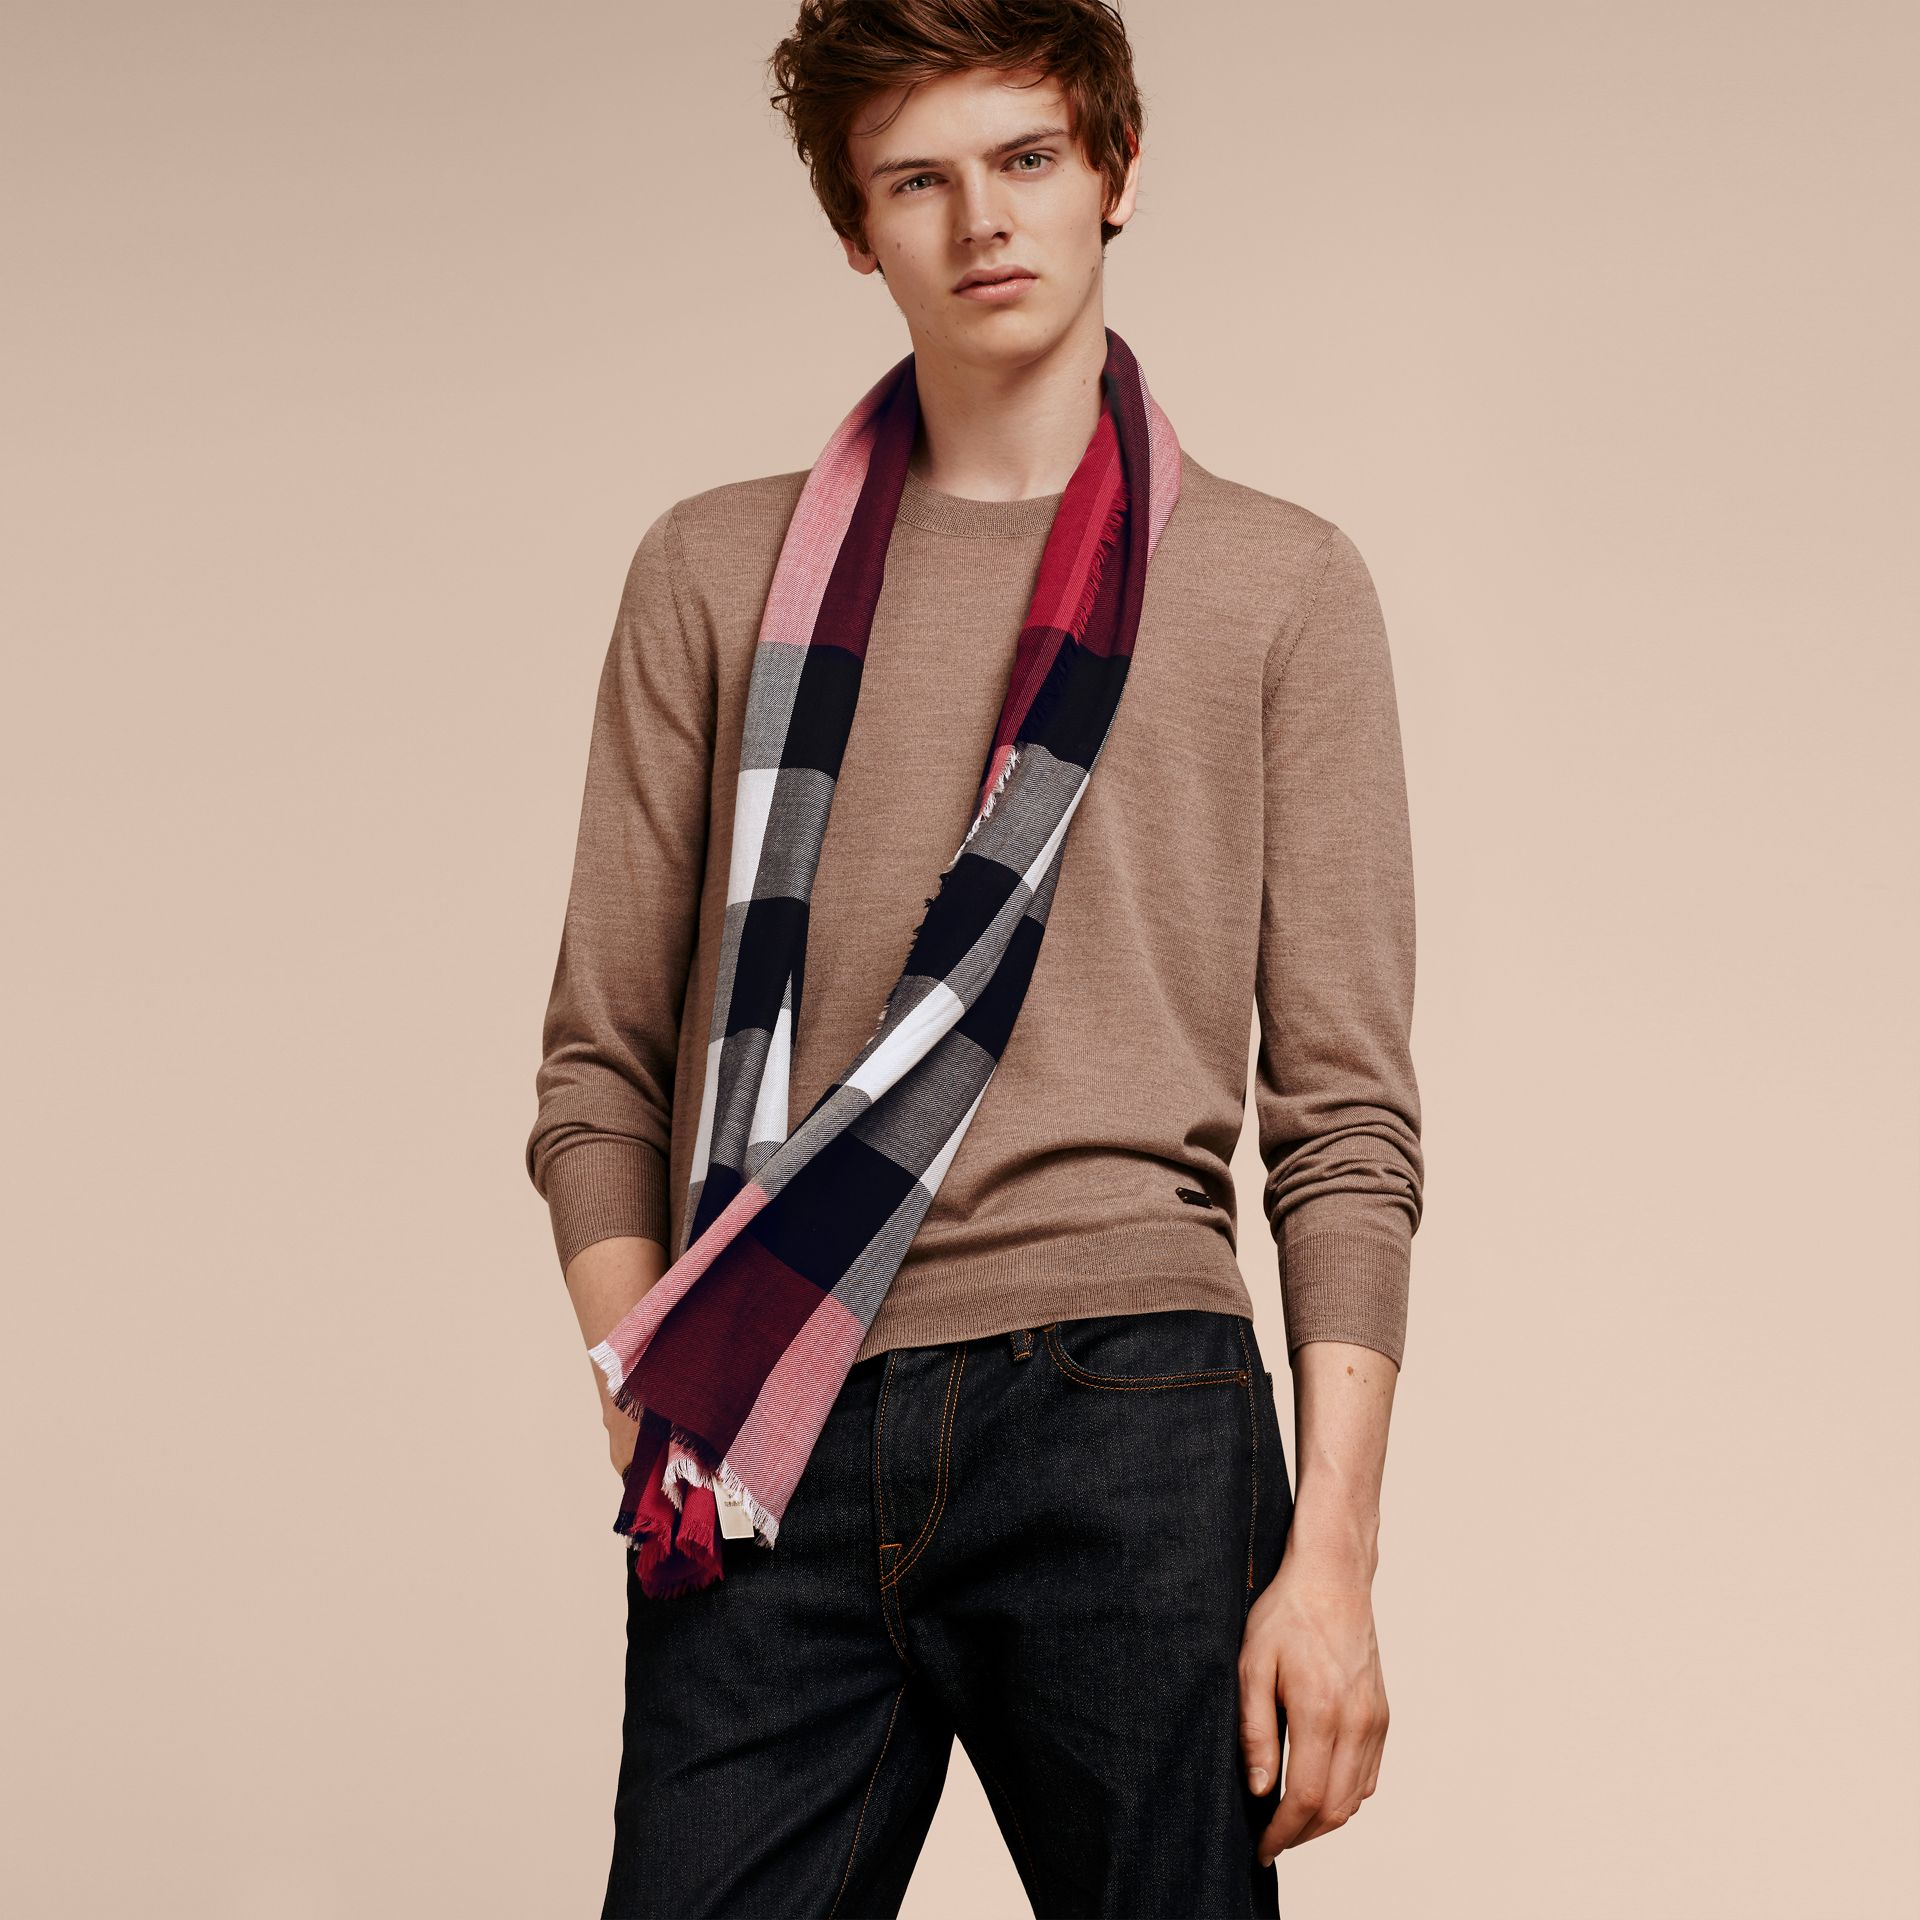 The Lightweight Cashmere Scarf in Check in Fuchsia Pink - gallery image 4